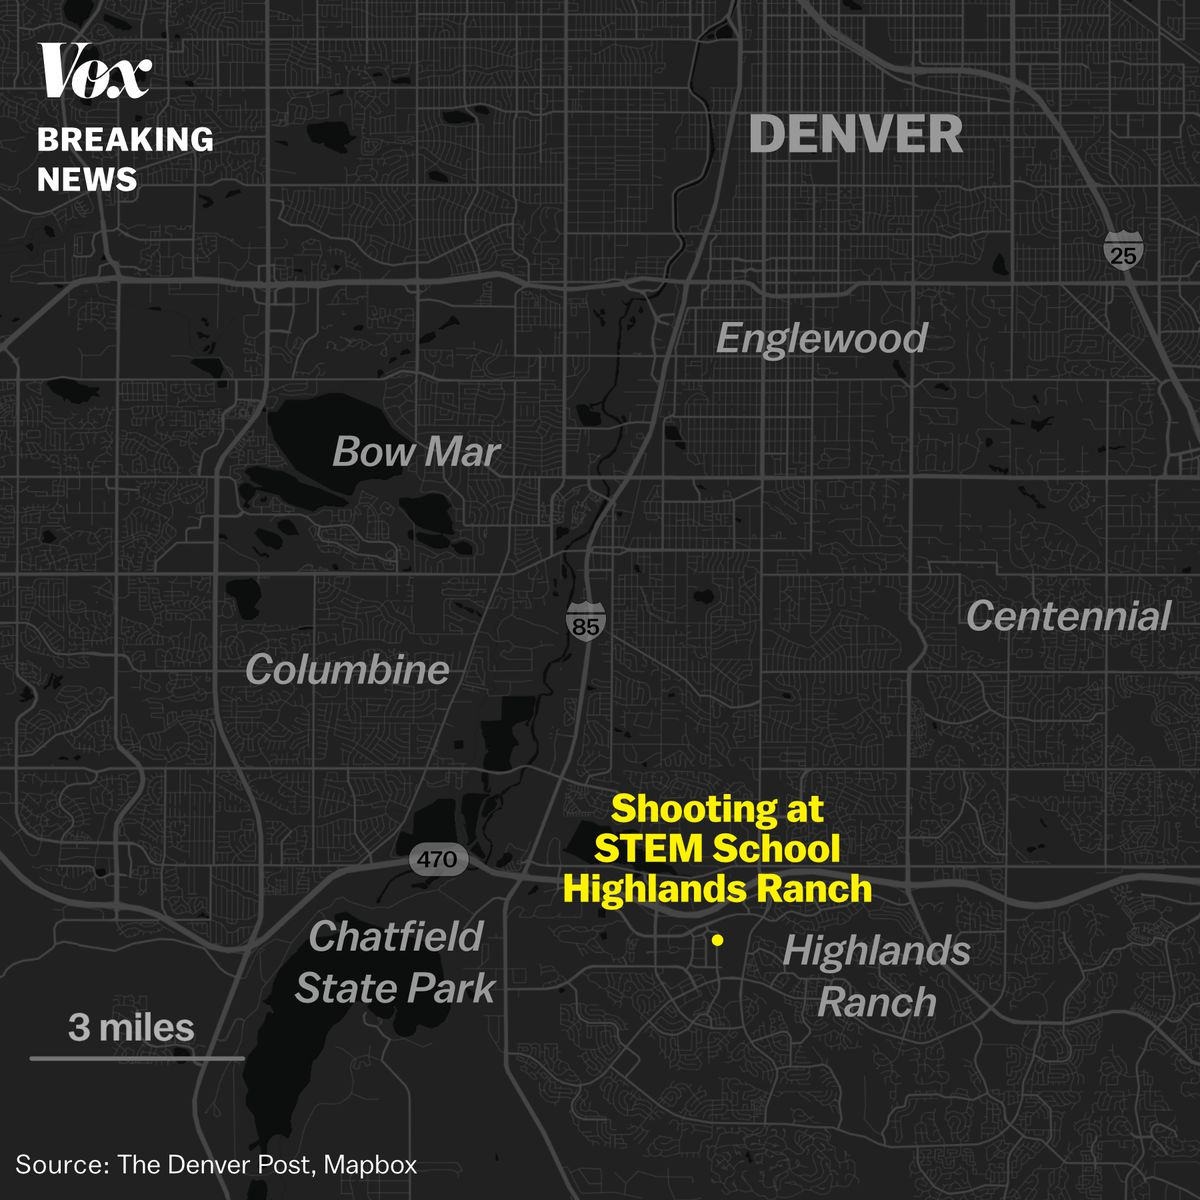 Highlands Ranch Colorado: Colorado Shooting At STEM School Highlands Ranch: What We